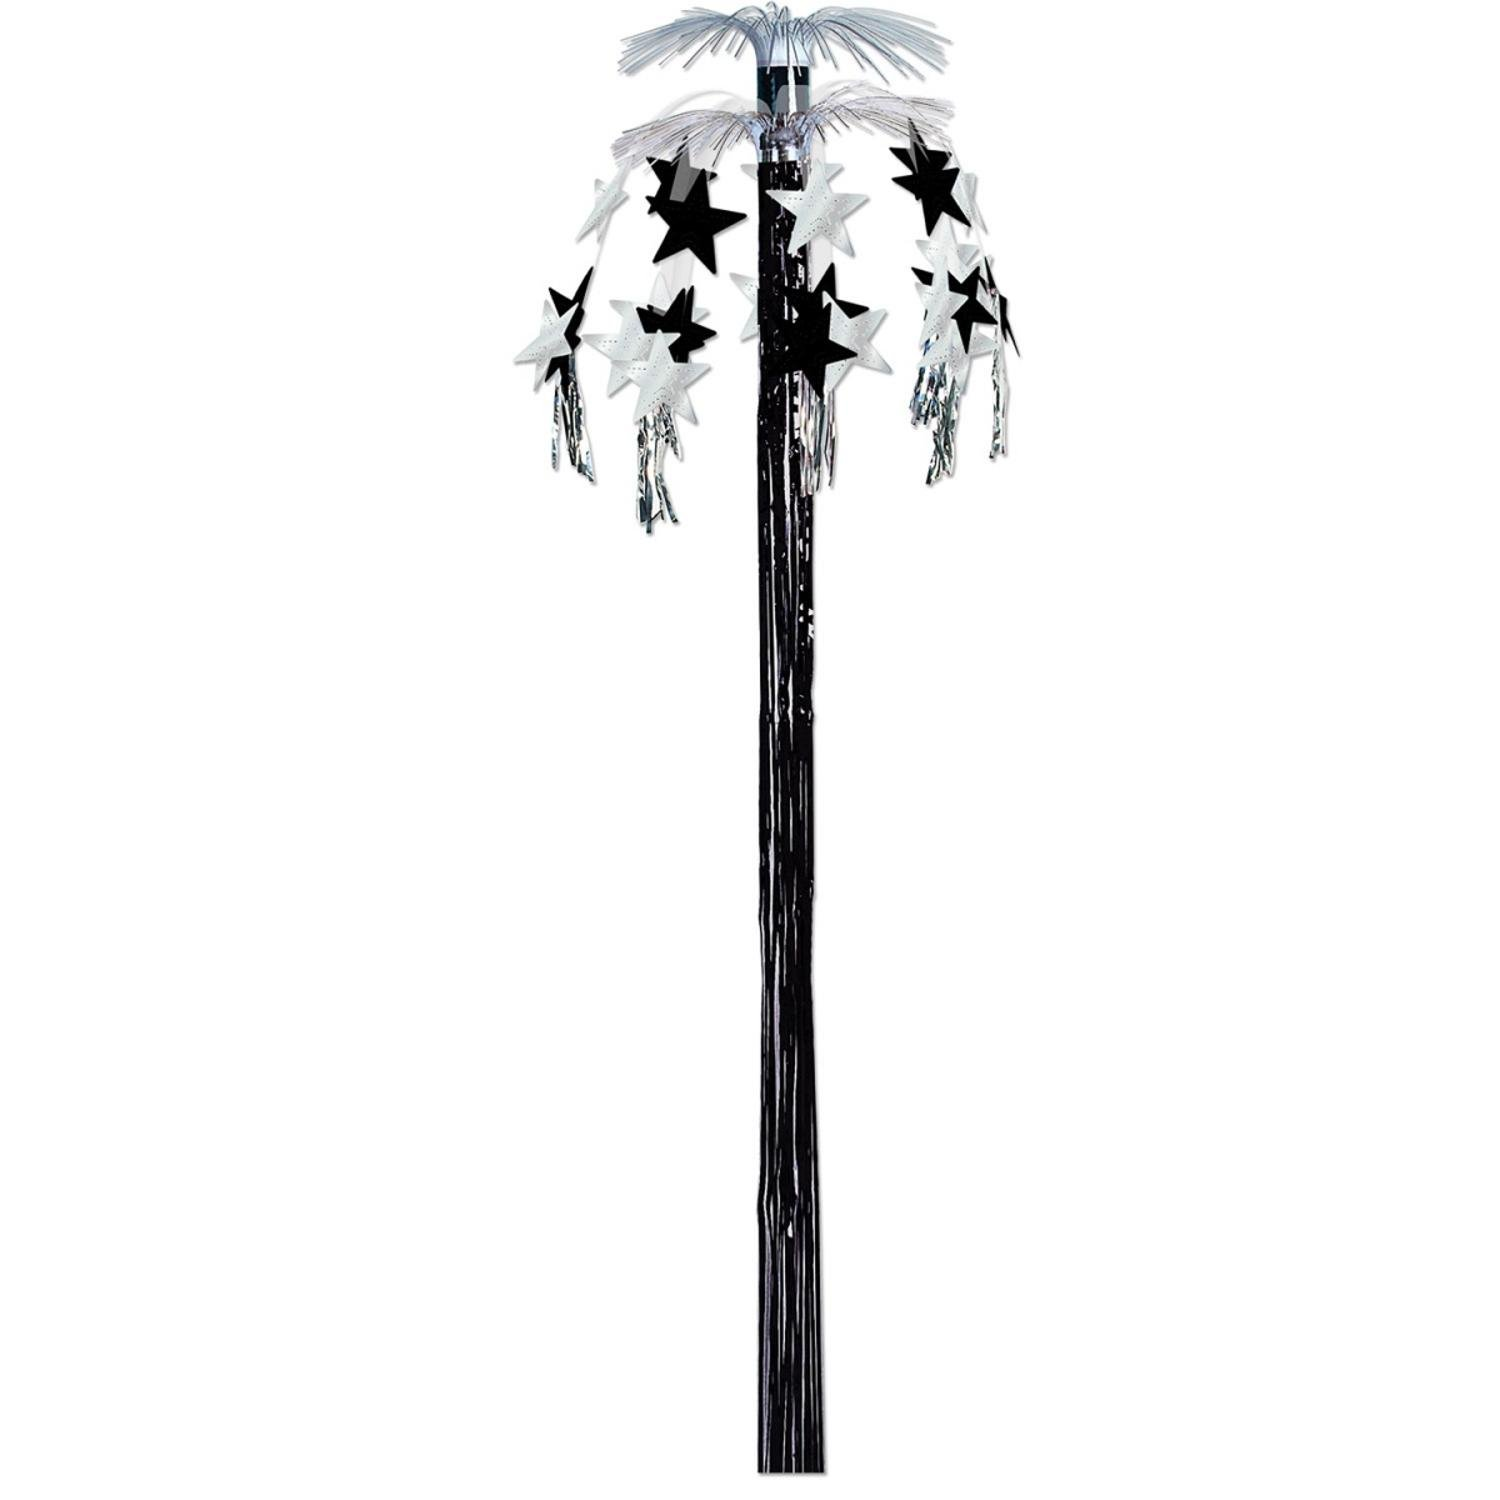 Club Pack of 12 Hanging Metallic Black and Silver Star Cascade Fountain Party Decorations 8'